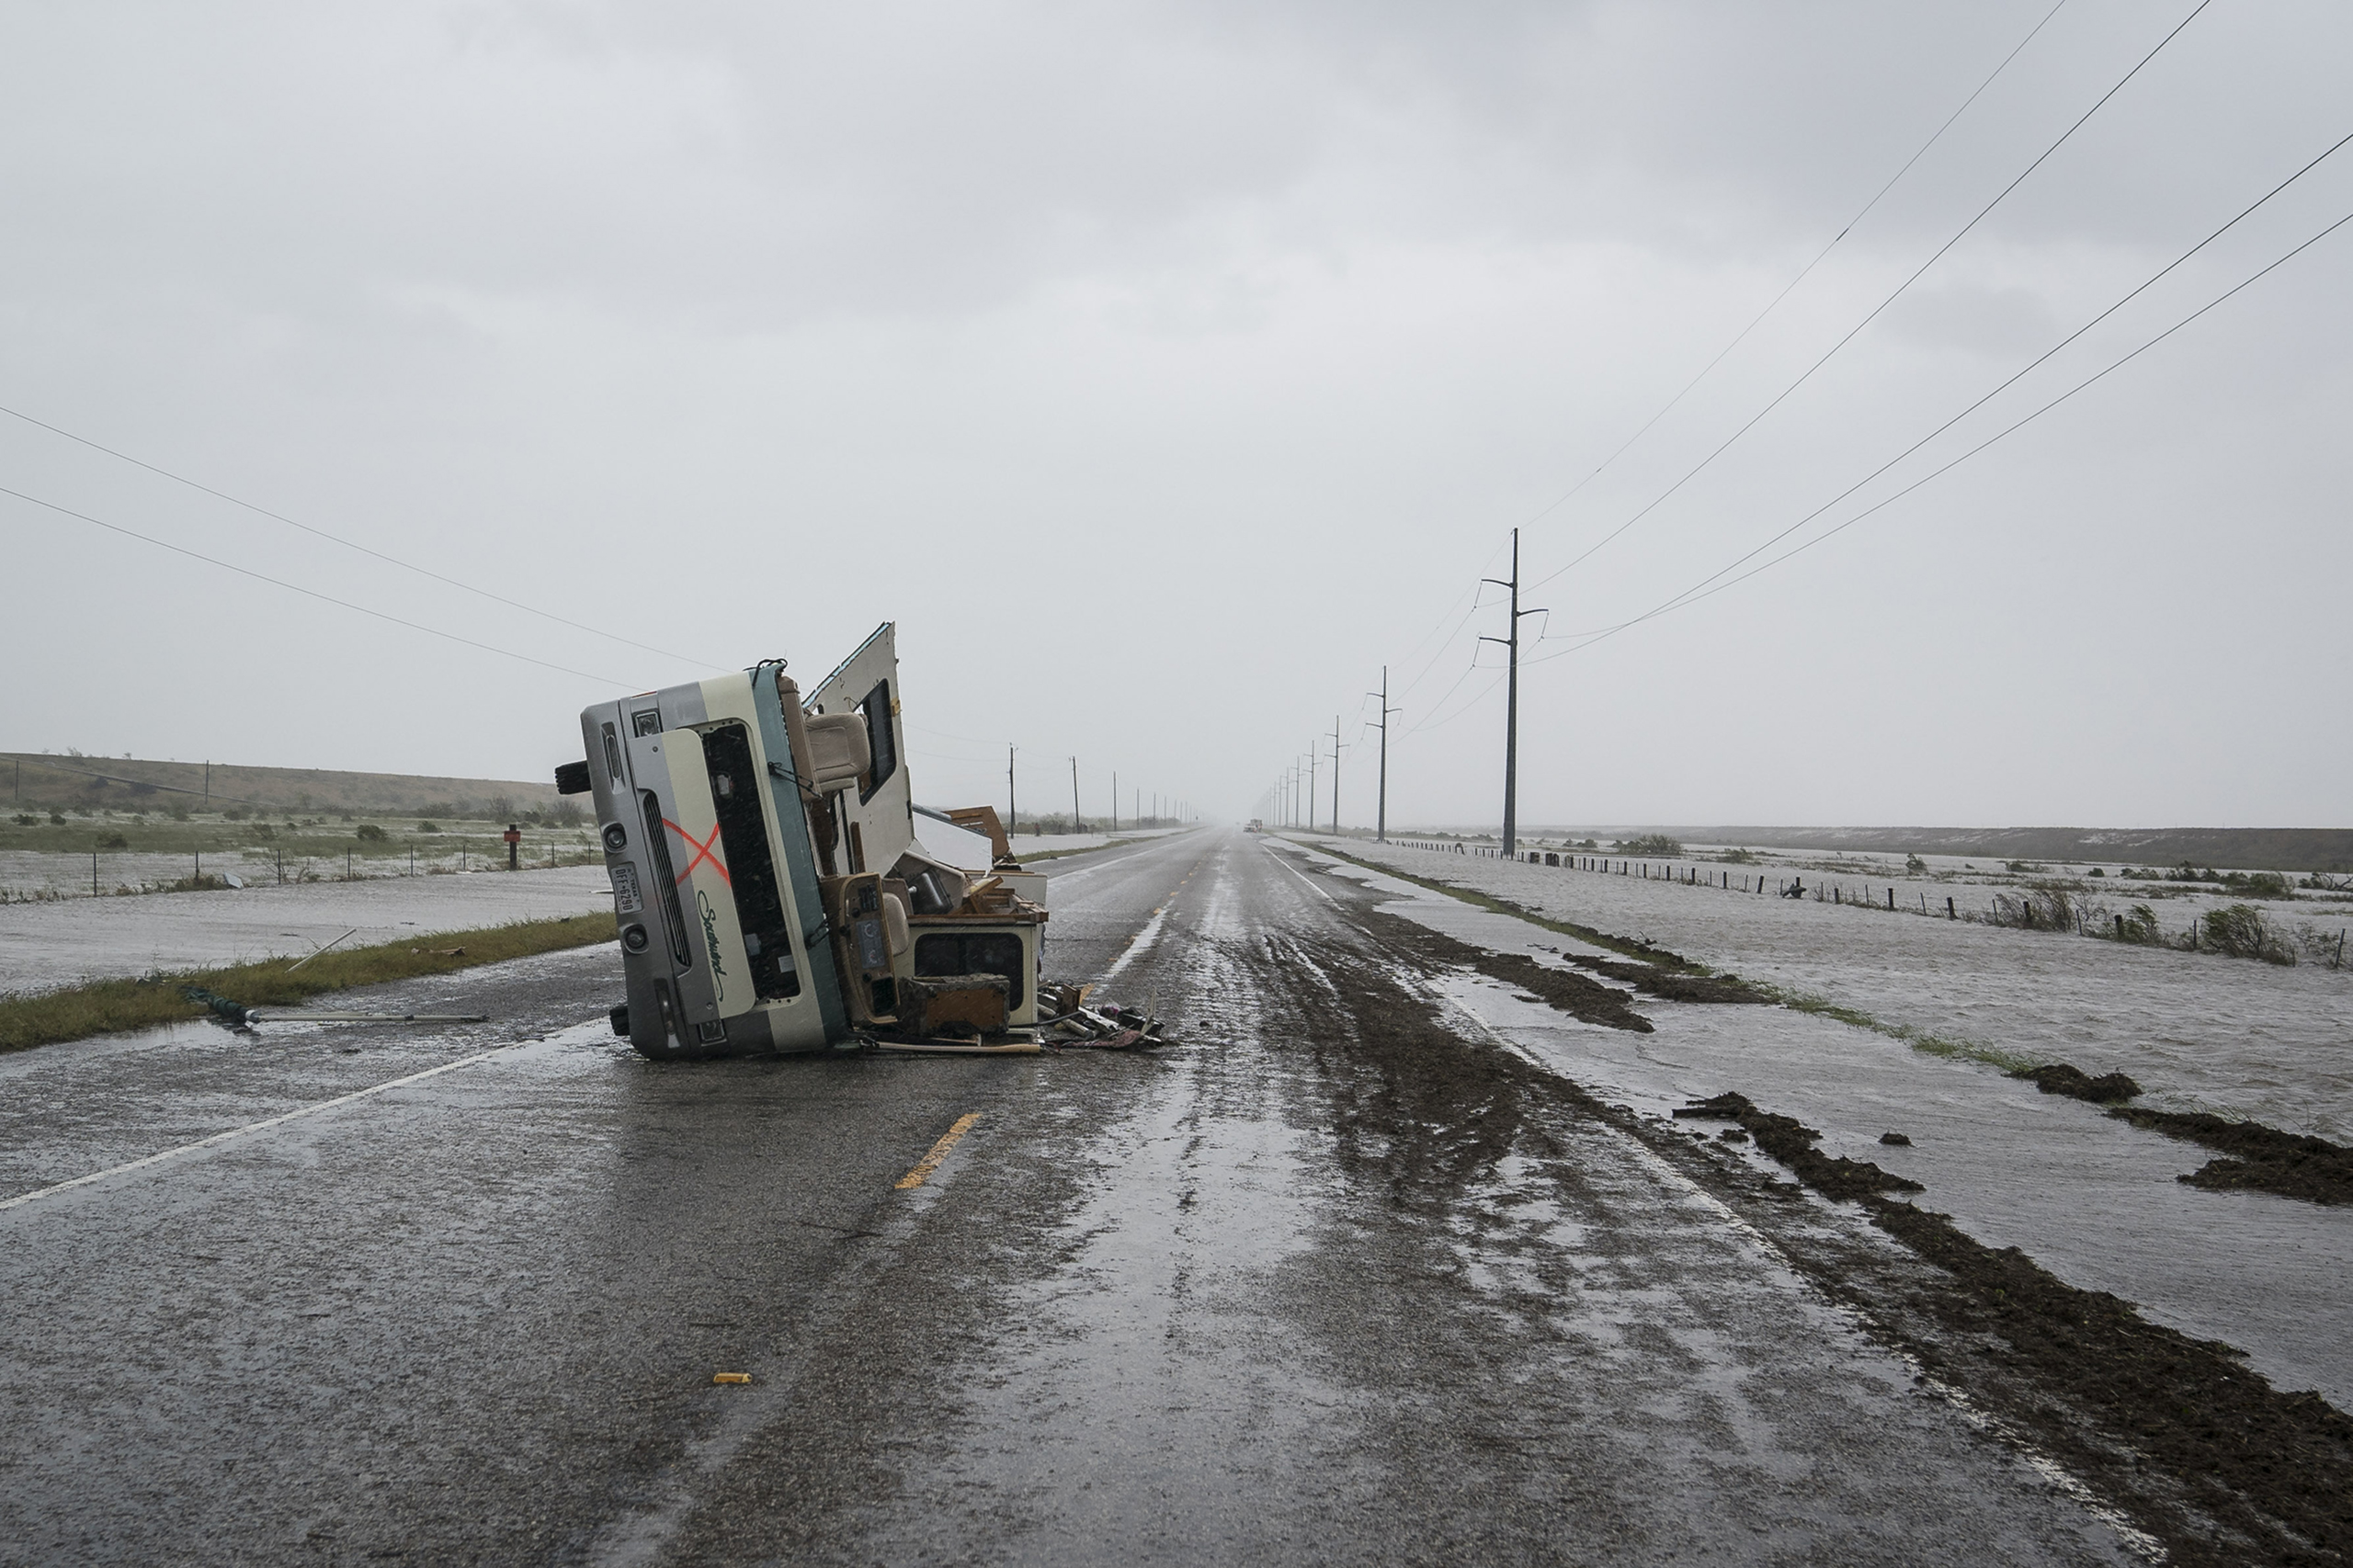 An RV is seen destroyed along the road near City-By-The Sea, TX as Hurricane Harvey hits the Texas coast on Aug 26, 2017.